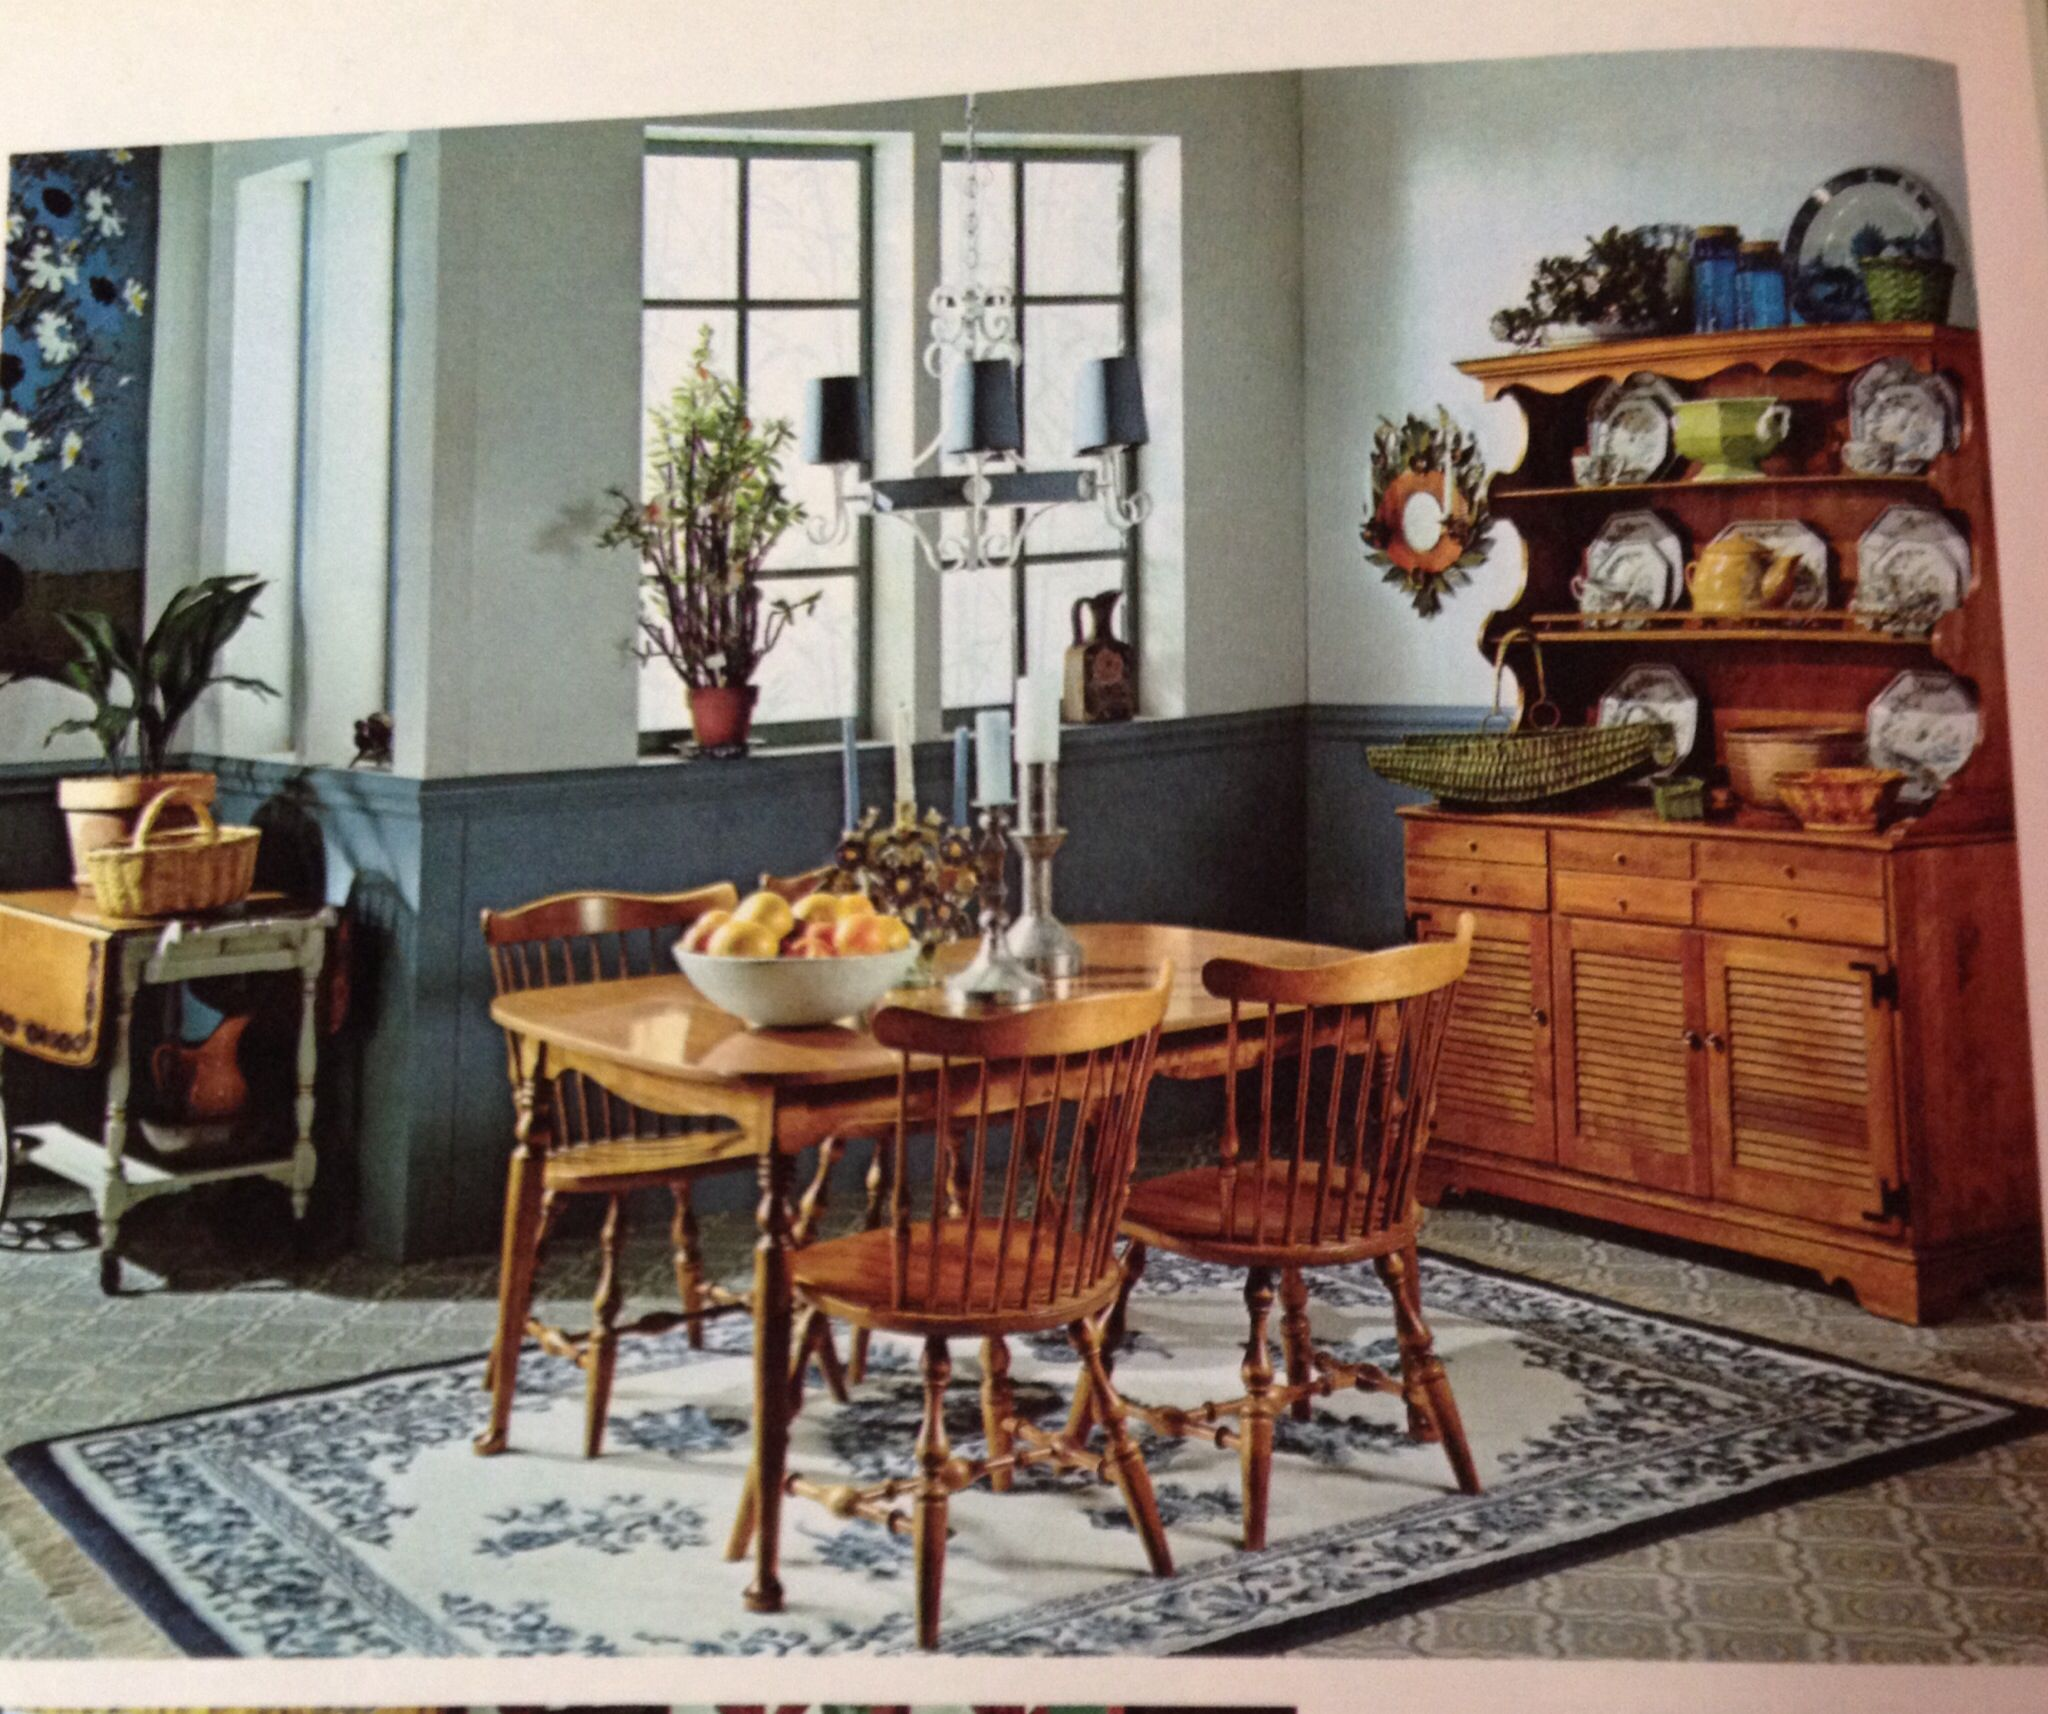 Furniture Home Decor: Early American Furniture, Home